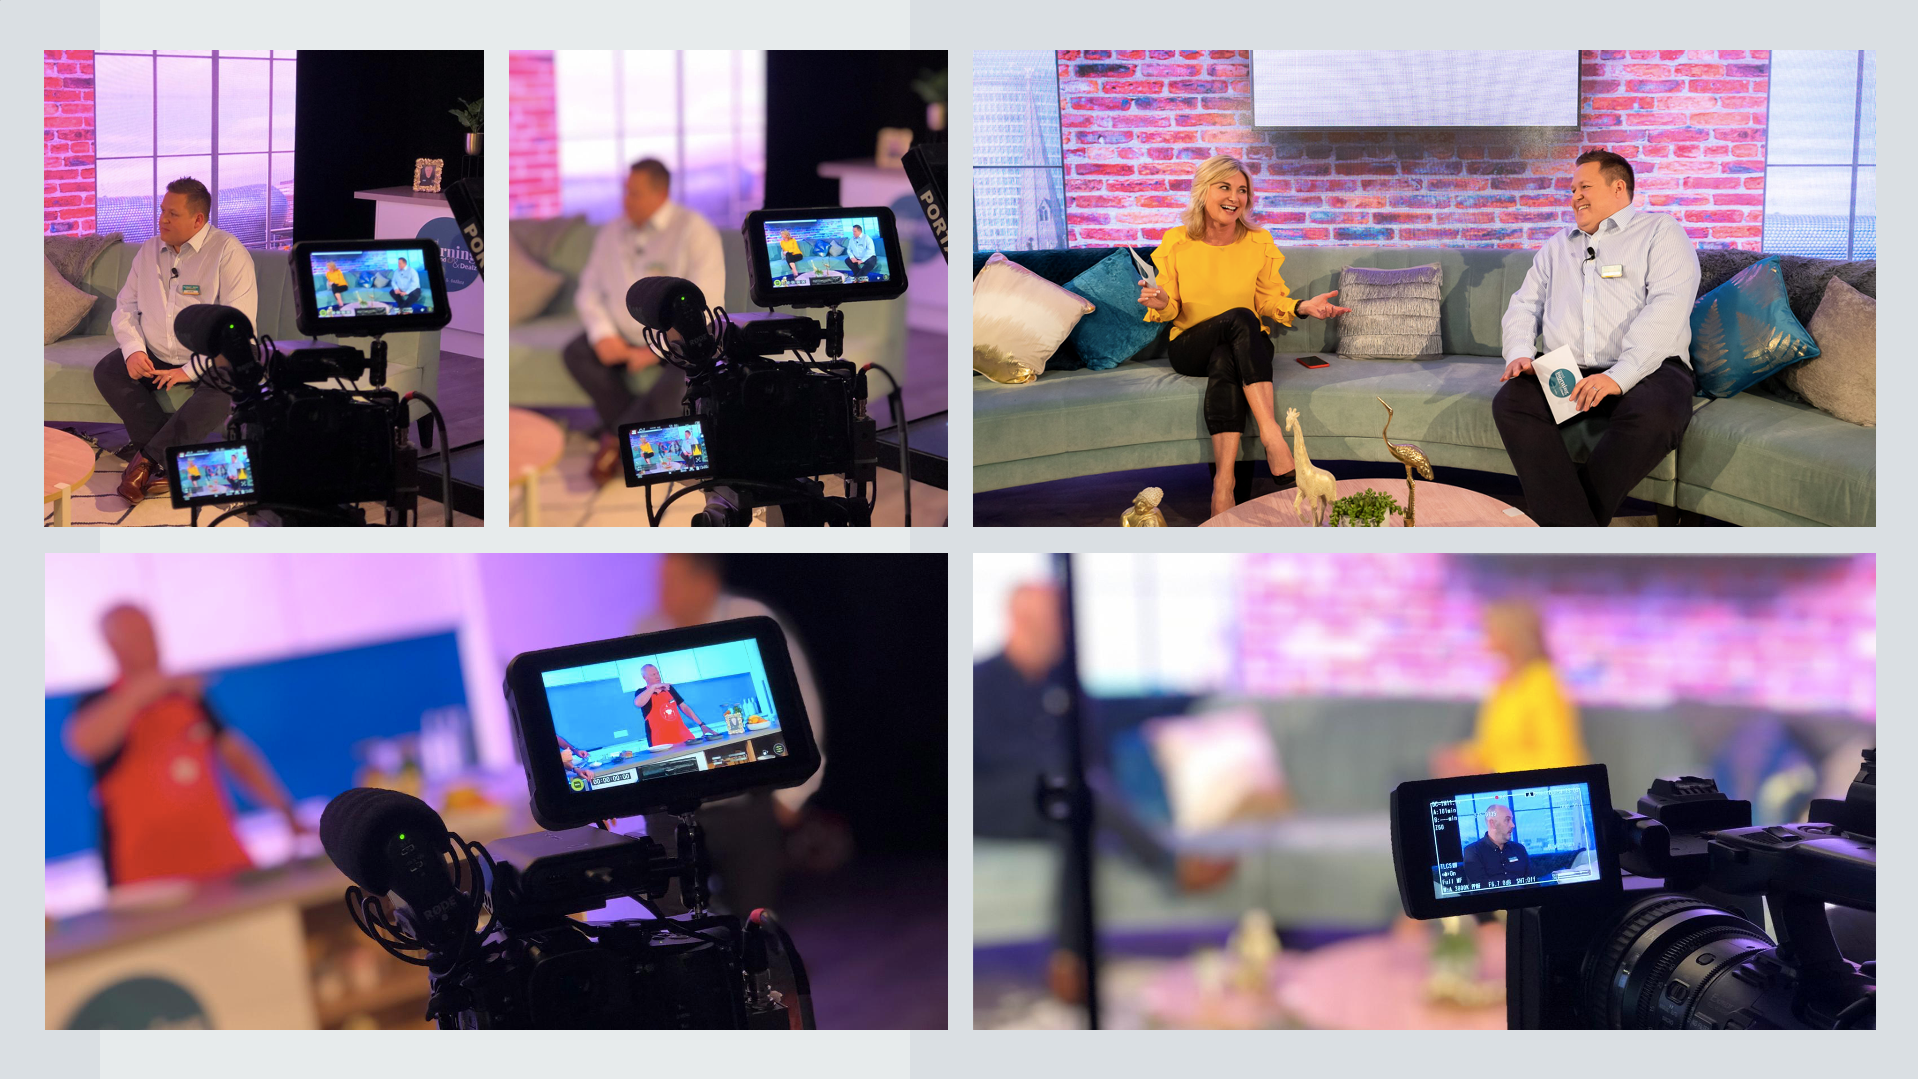 Meet & Potato TV studio set up to pre-record video content for a virtual event. The presenters, Anthea Turner and Poundland retail director, Austin Cooke sit on a sofa surrounded by a film crew in the style of daytime TV shows.